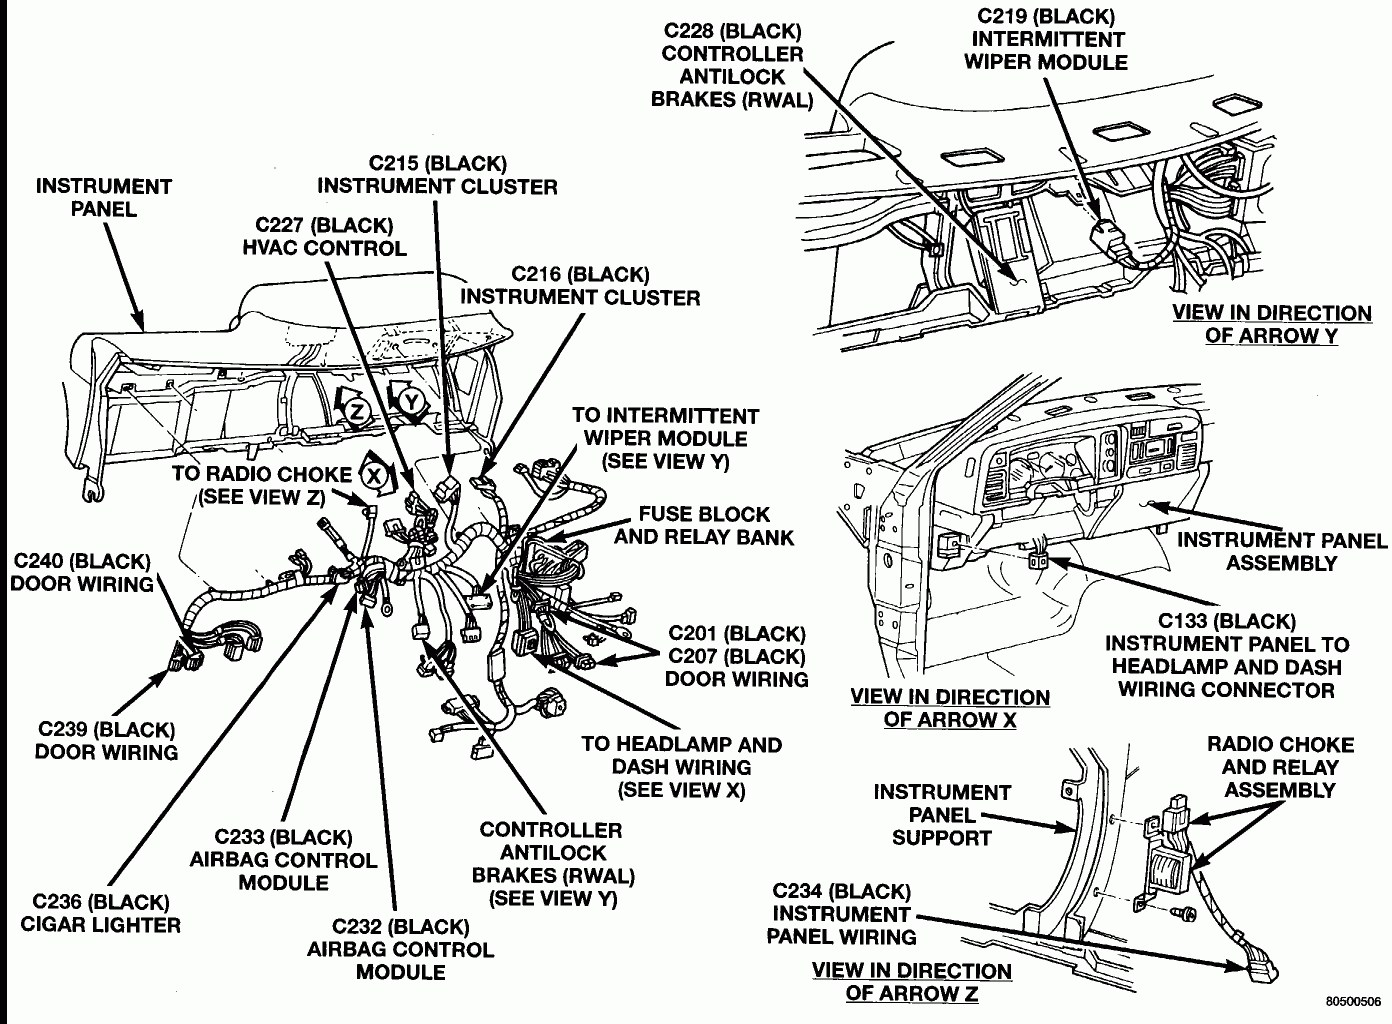 Nv 5265 Chevy Avalanche Wiring Diagram Furthermore Nissan Sentra Obd Port Download Diagram